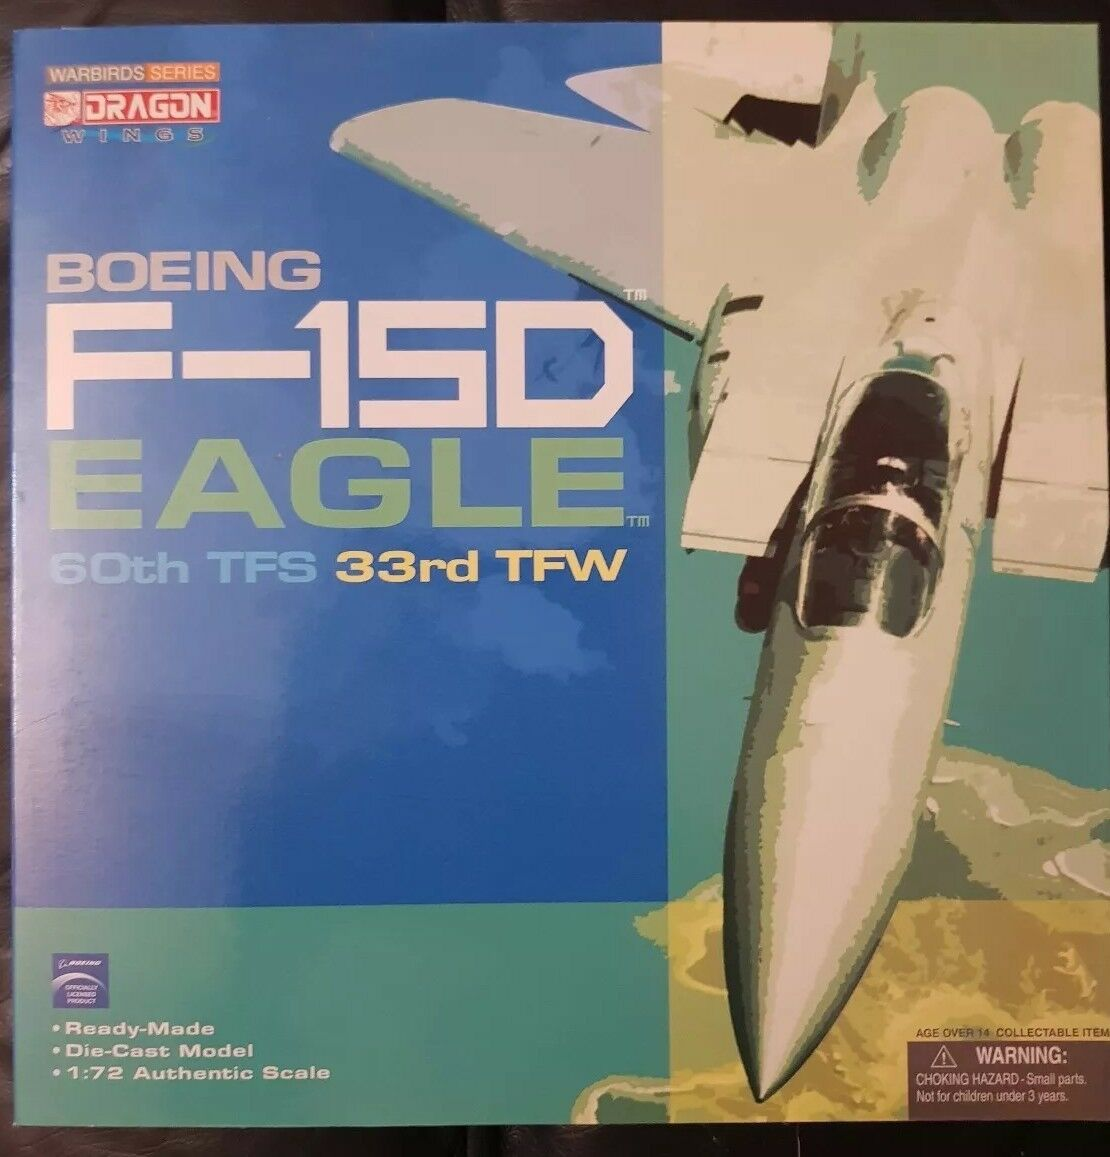 Dragon Wings WARBIRDS serie Boeing F-15D Strike Eagle 60th Tfs 33rd TFW 50145